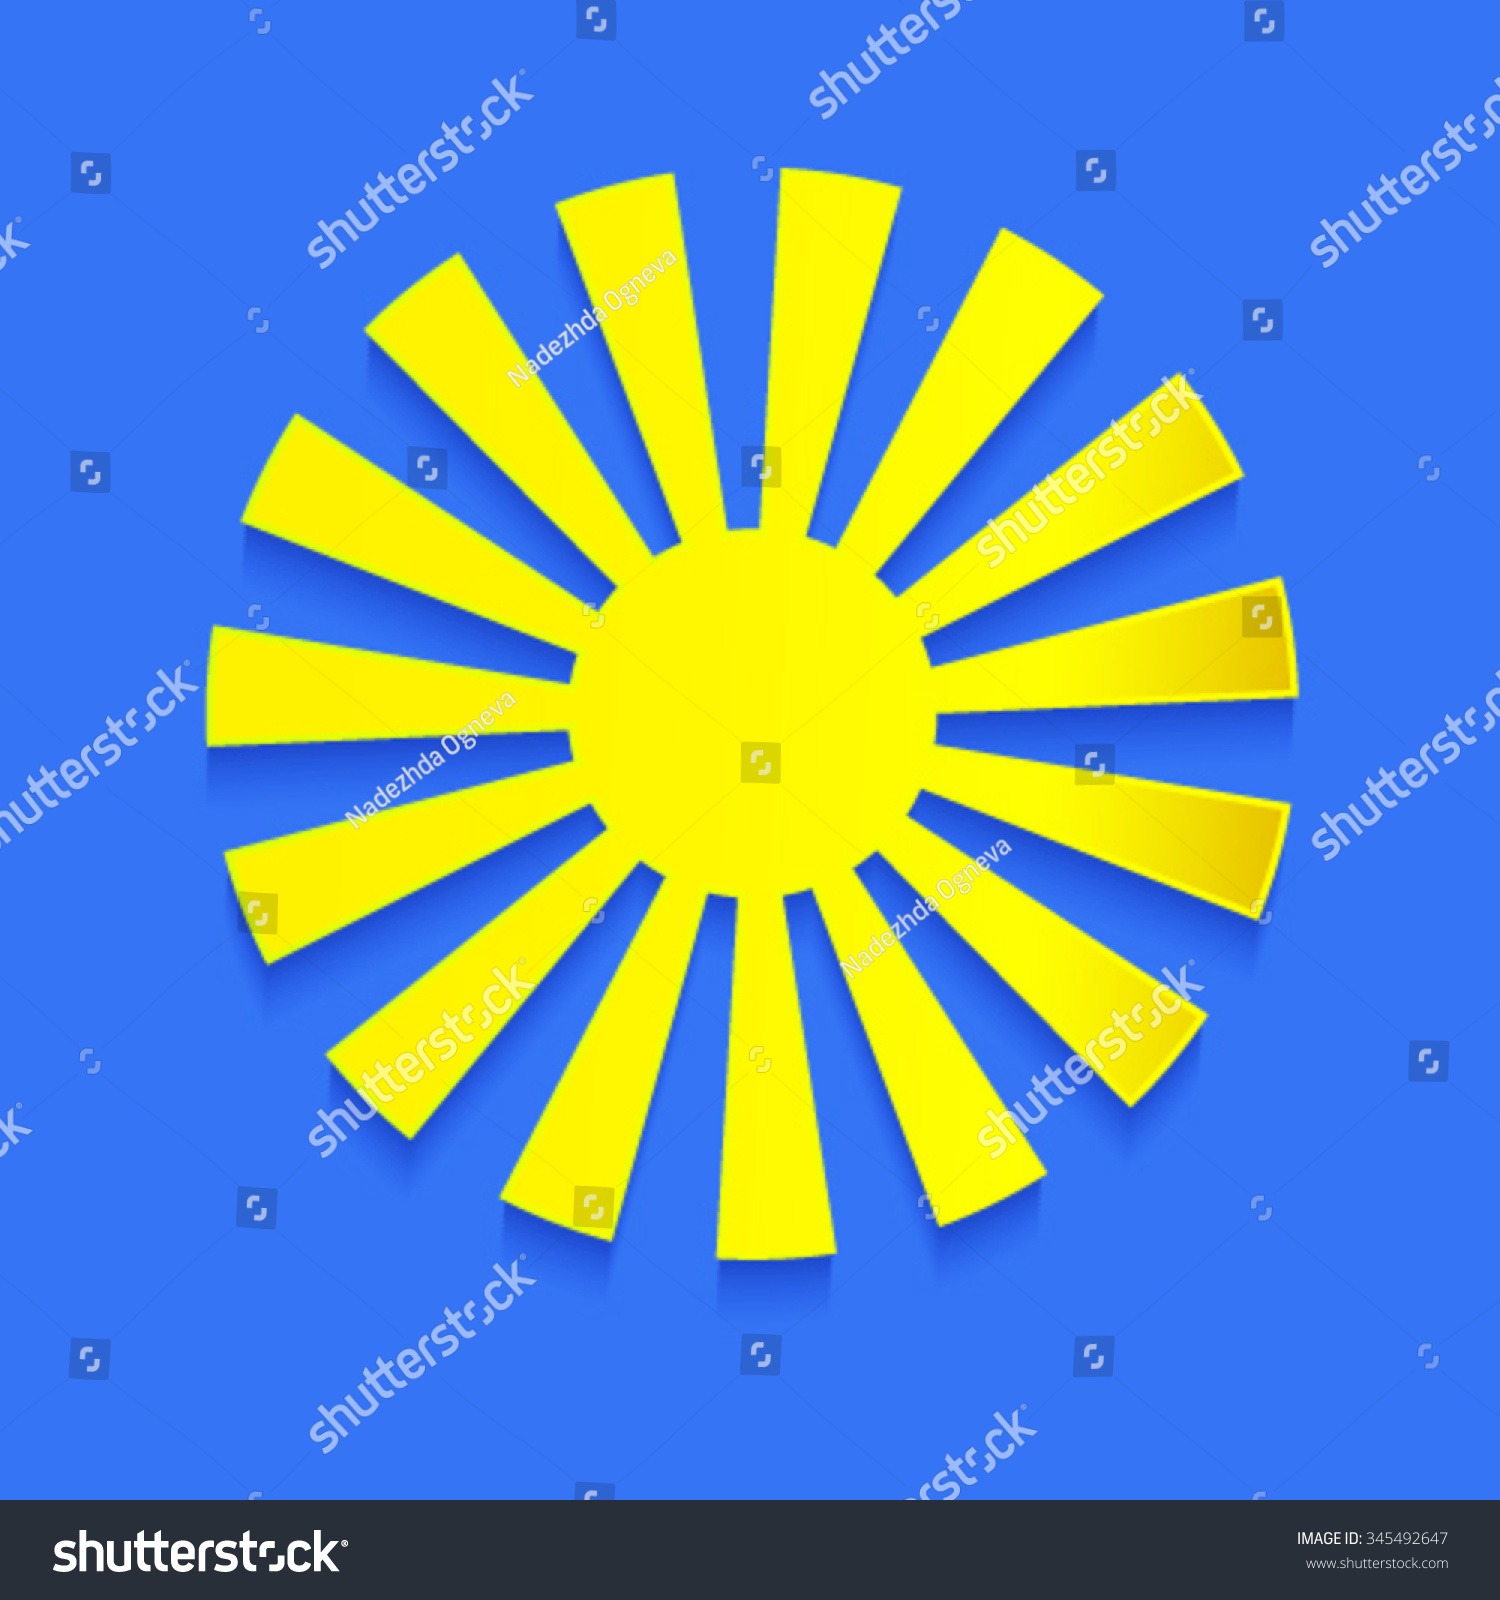 Sun cutout paper icons shadow on stock vector 345492647 shutterstock sun cutout paper icons with shadow on blue sky background vector meteo forecast weather symbols buycottarizona Choice Image